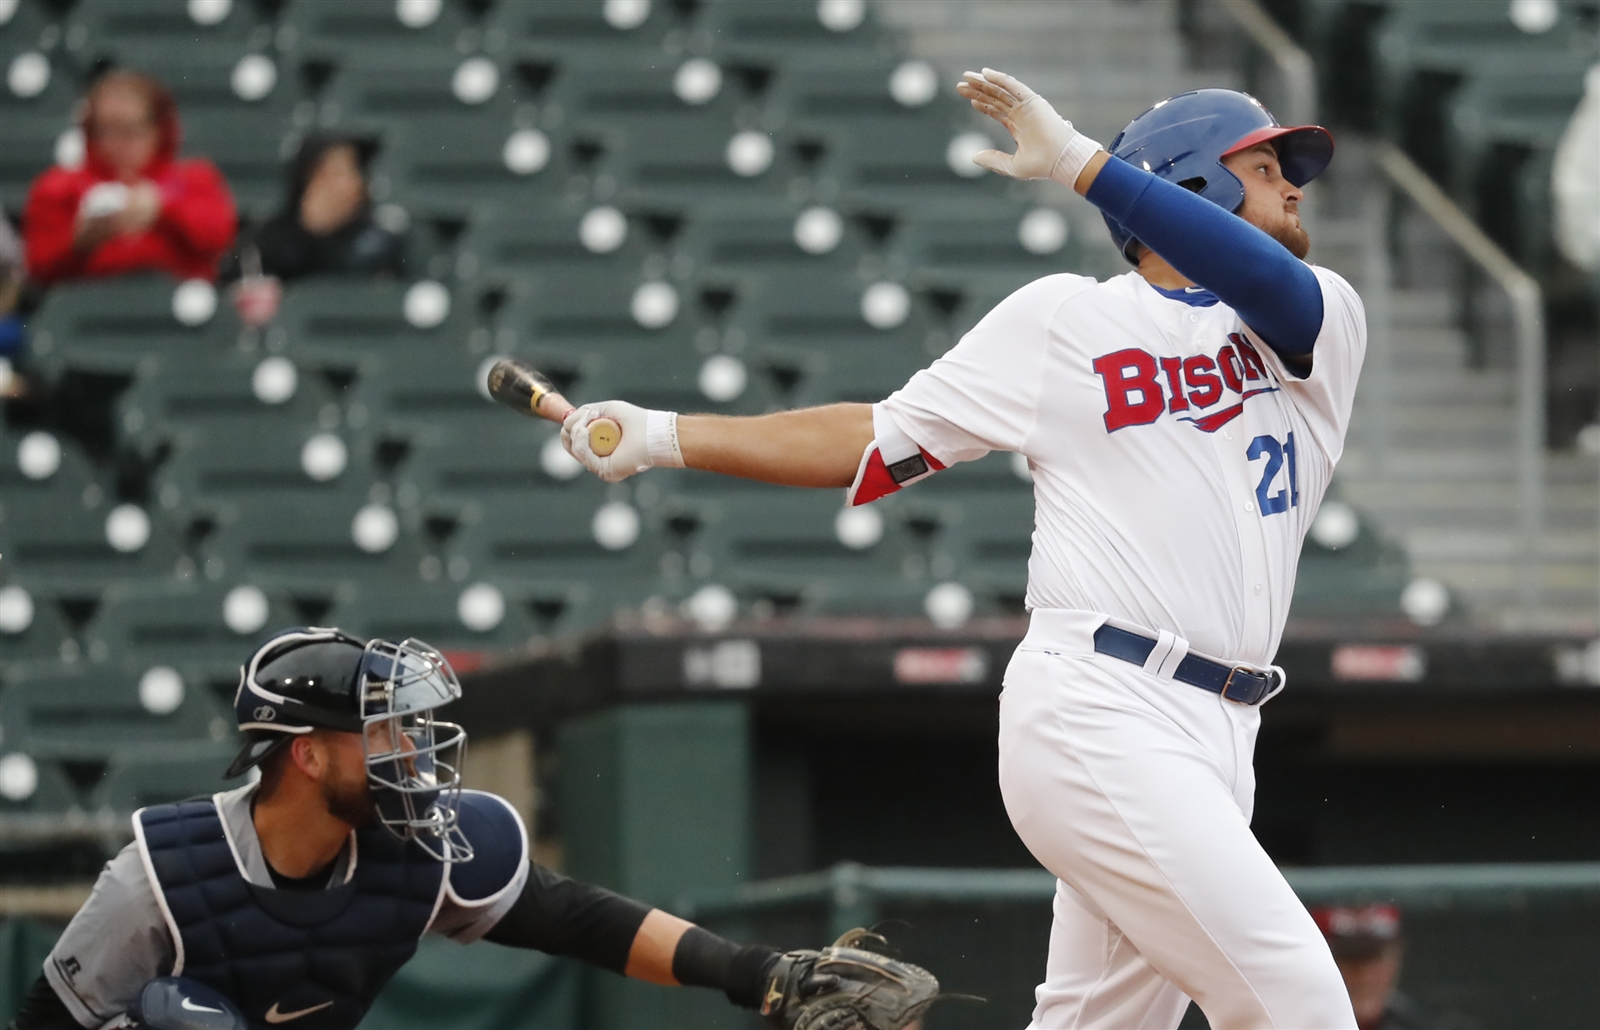 Rowdy Tellez, one of the top prospects for the Toronto Blue Jays, is having another difficult April. (Harry Scull Jr./Buffalo News)